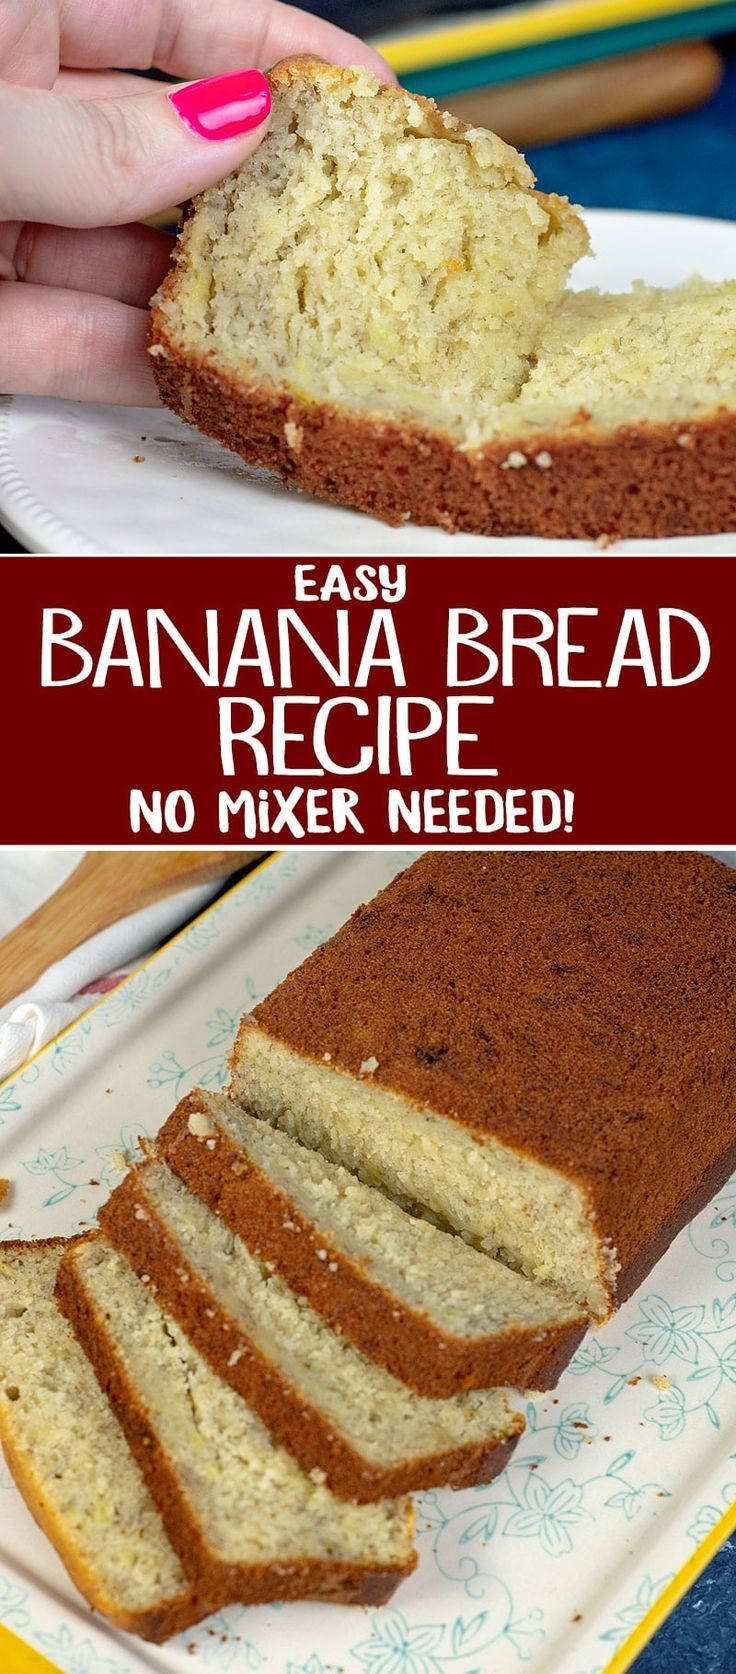 A Delicious And Easy Banana Bread Recipe That Needs To Be Part Of